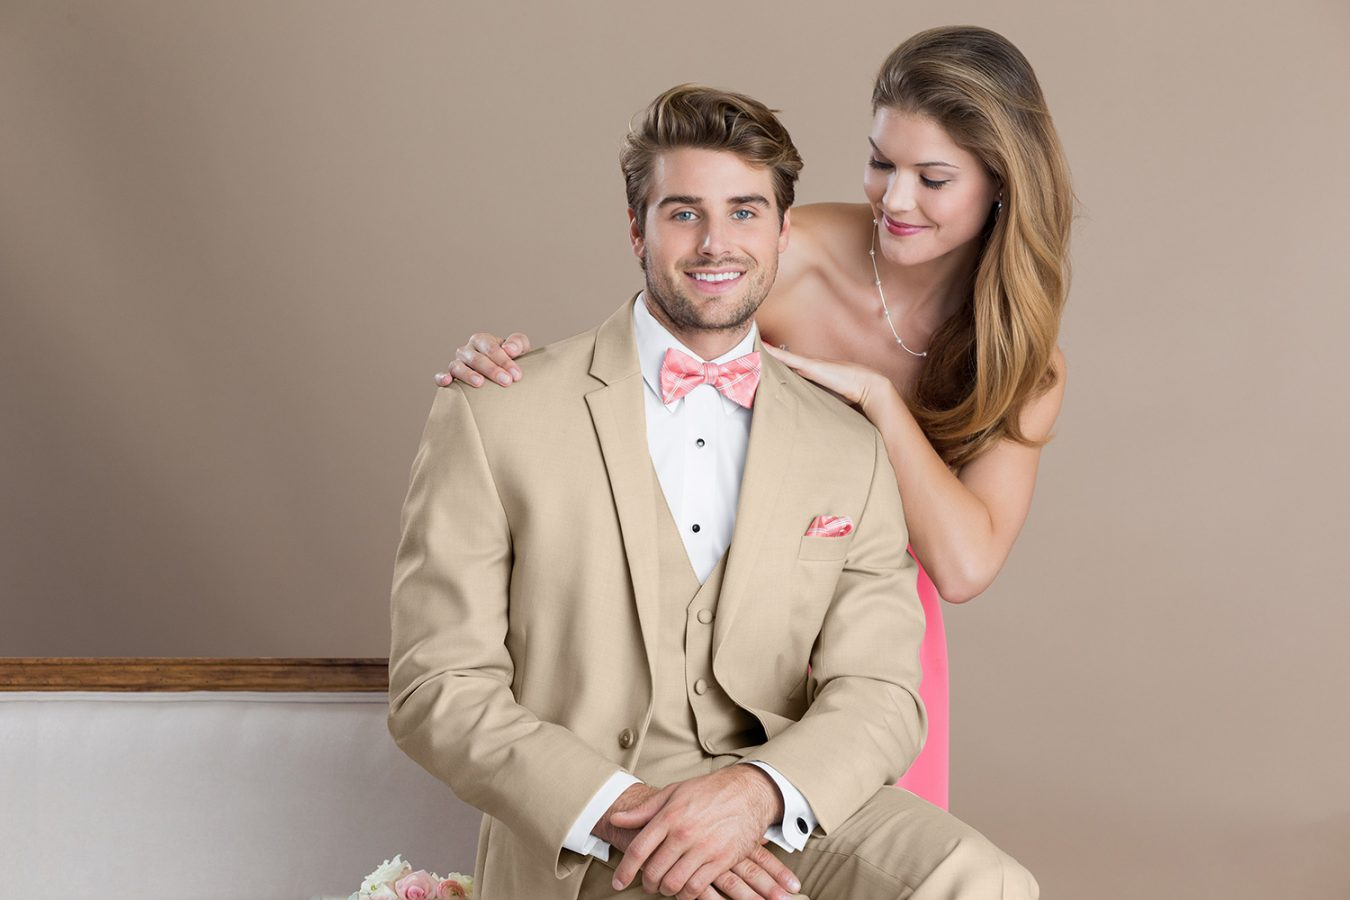 kenosha men's formal wear, kenosha prom suits, men's formal wear prom kenosha